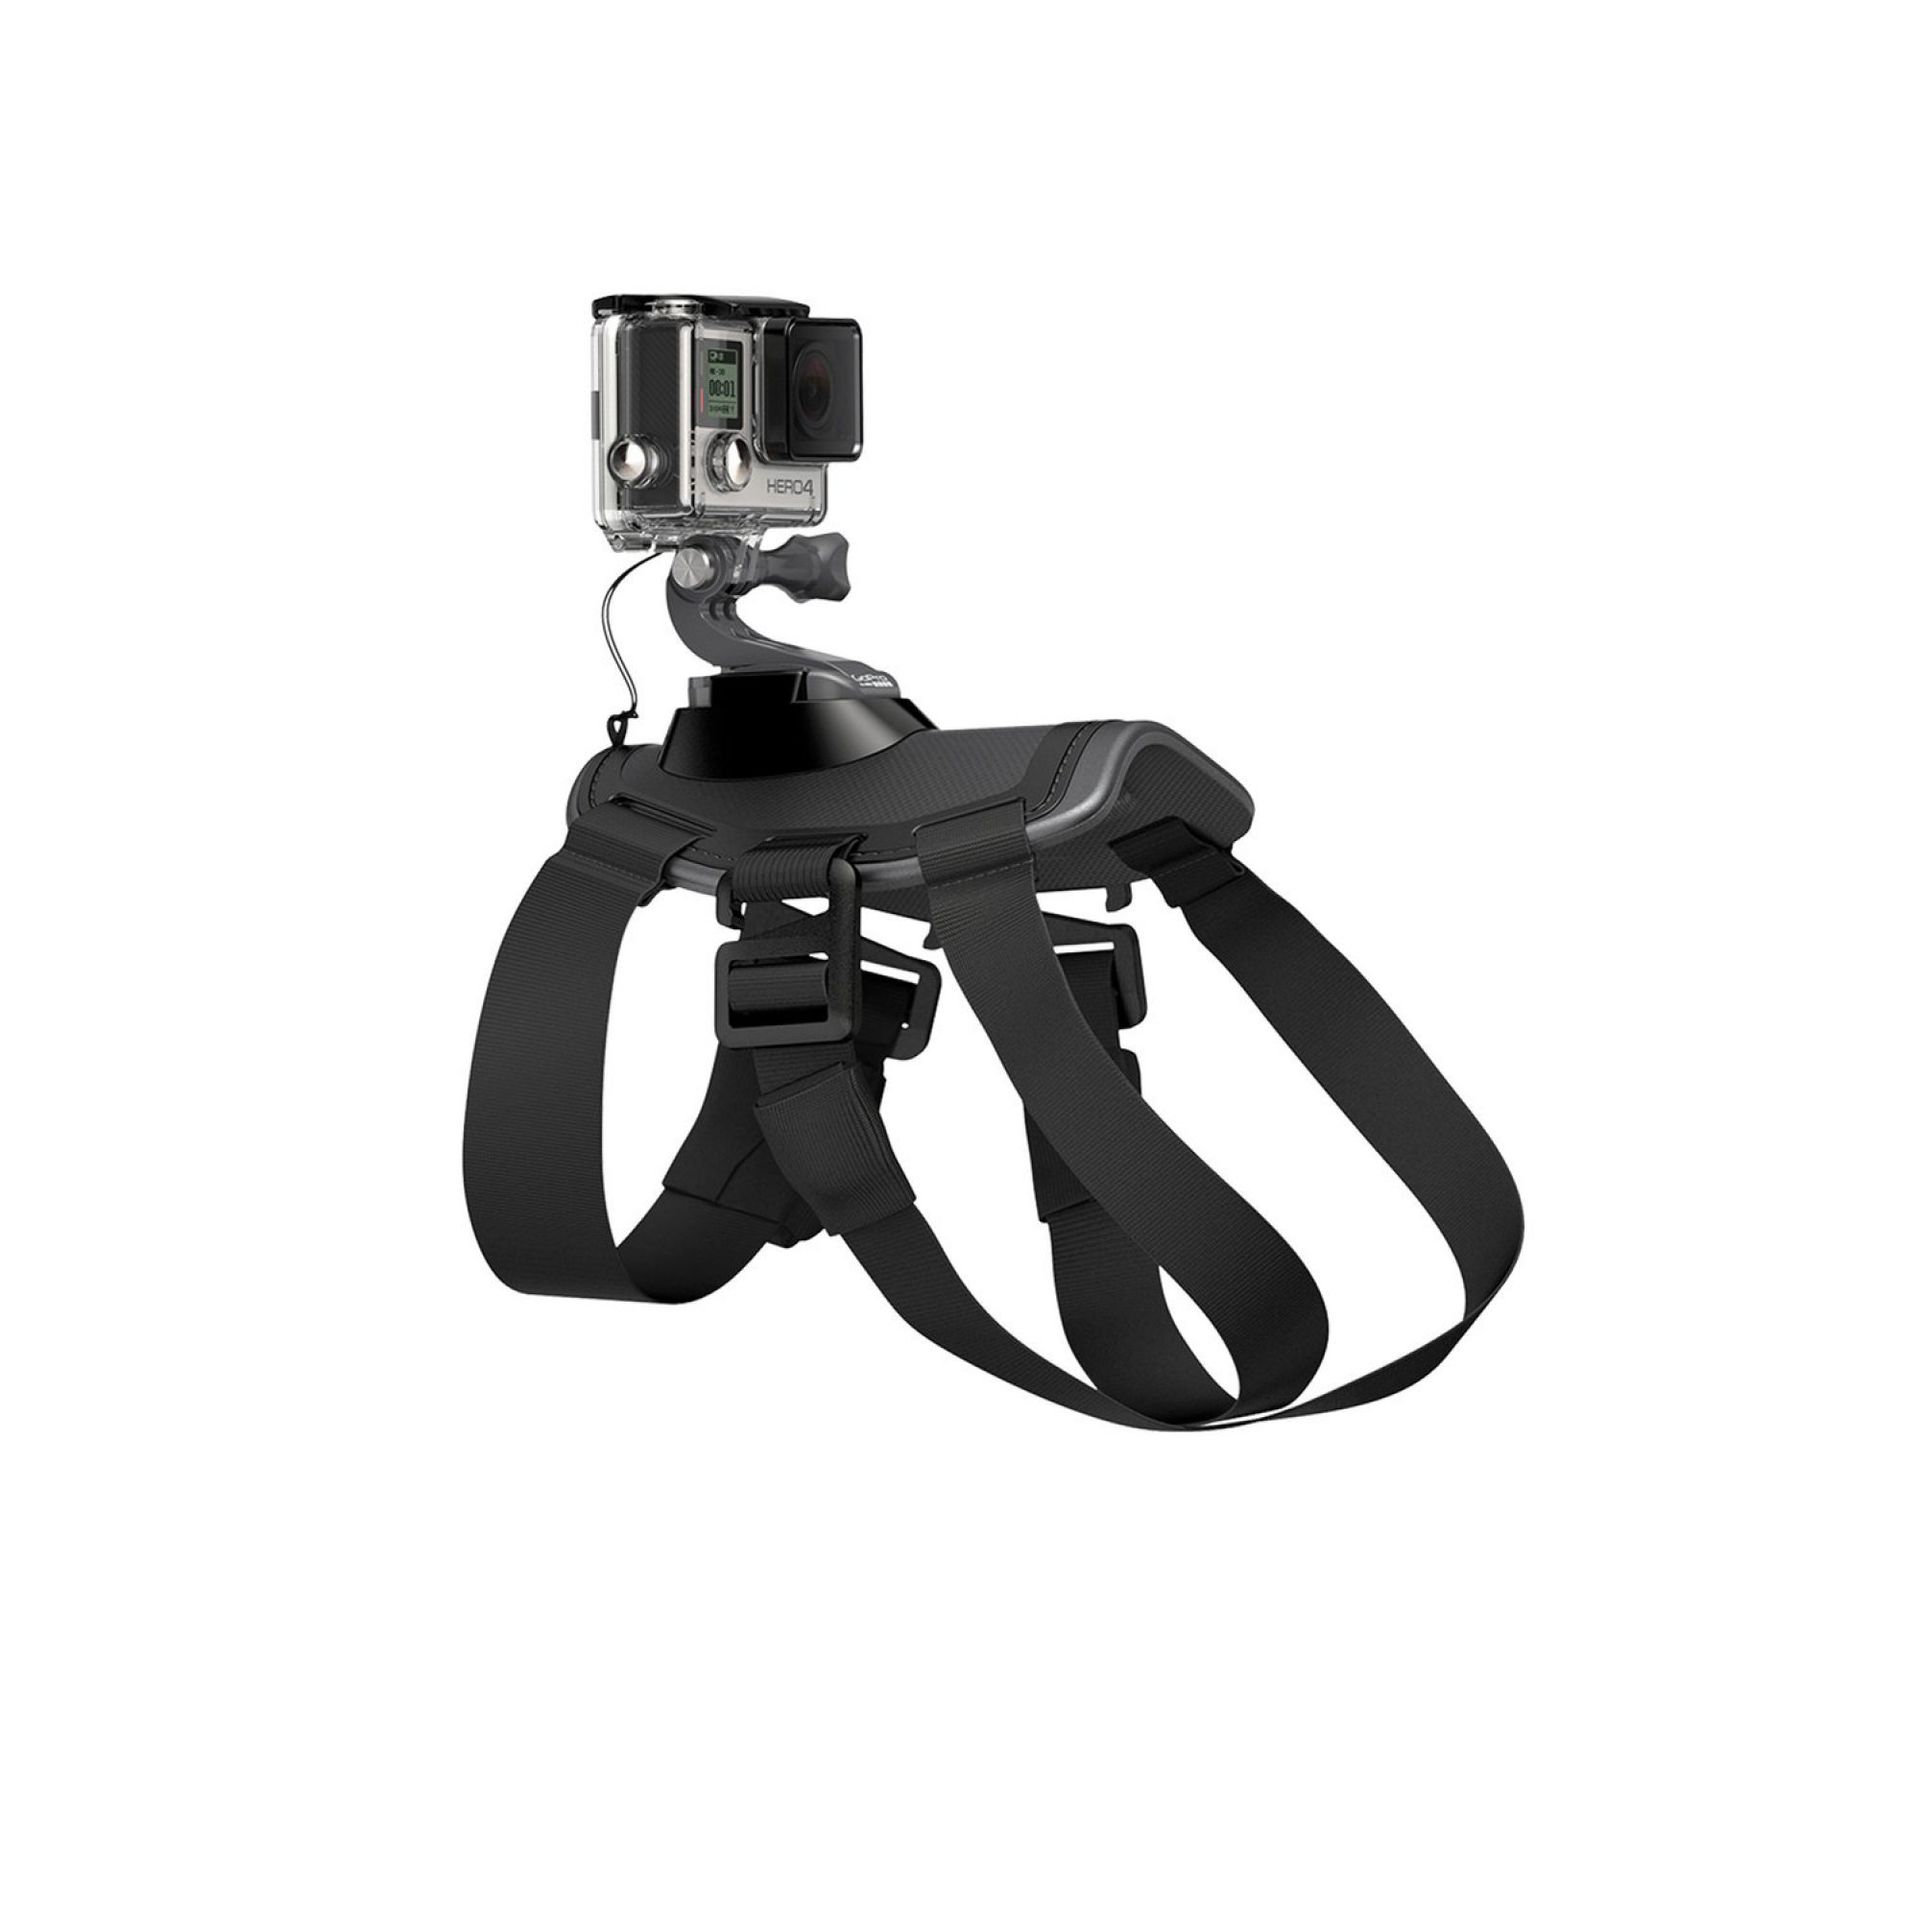 SZELKI DLA PSA GOPRO FETCH DOG HARNESS ADOGM-001